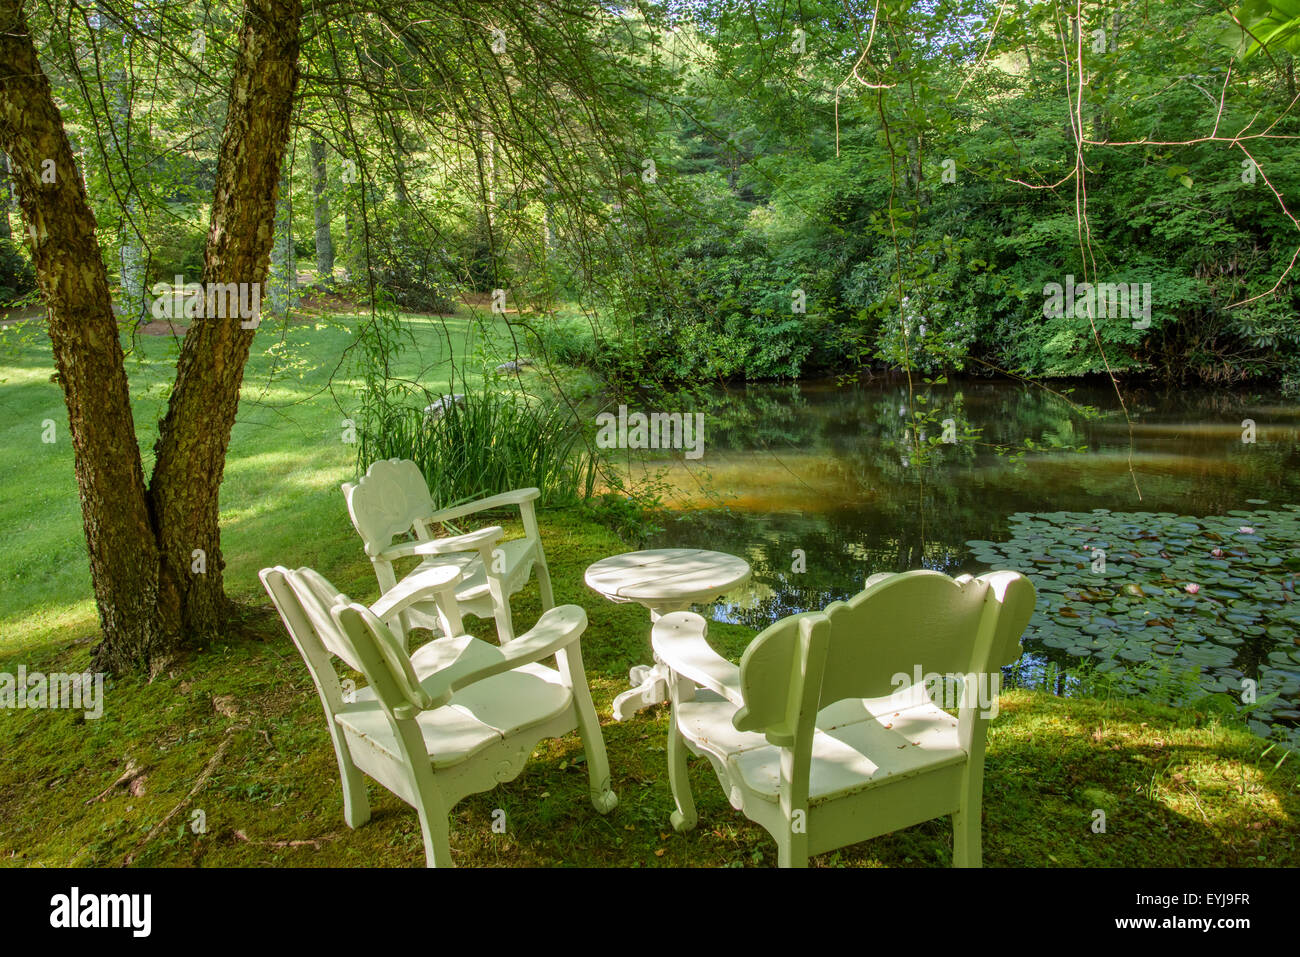 Serene coy pond in wooded landscape - Stock Image